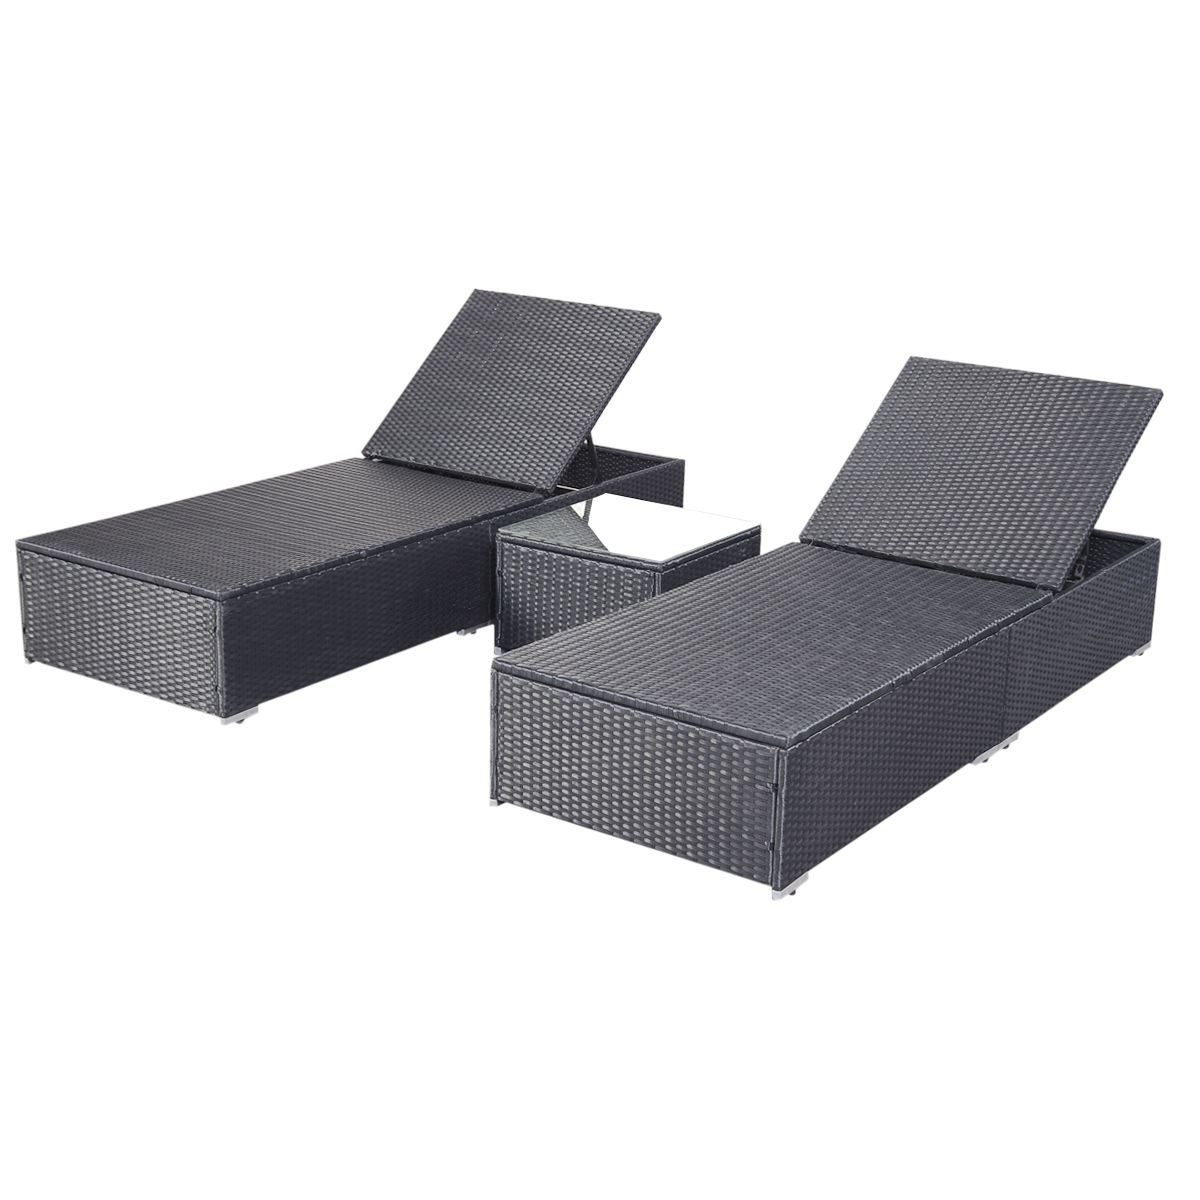 Grey Wicker Chaise Lounge Chairs With Regard To Newest Grey Wicker Lounge Chairs • Lounge Chairs Ideas (View 2 of 15)